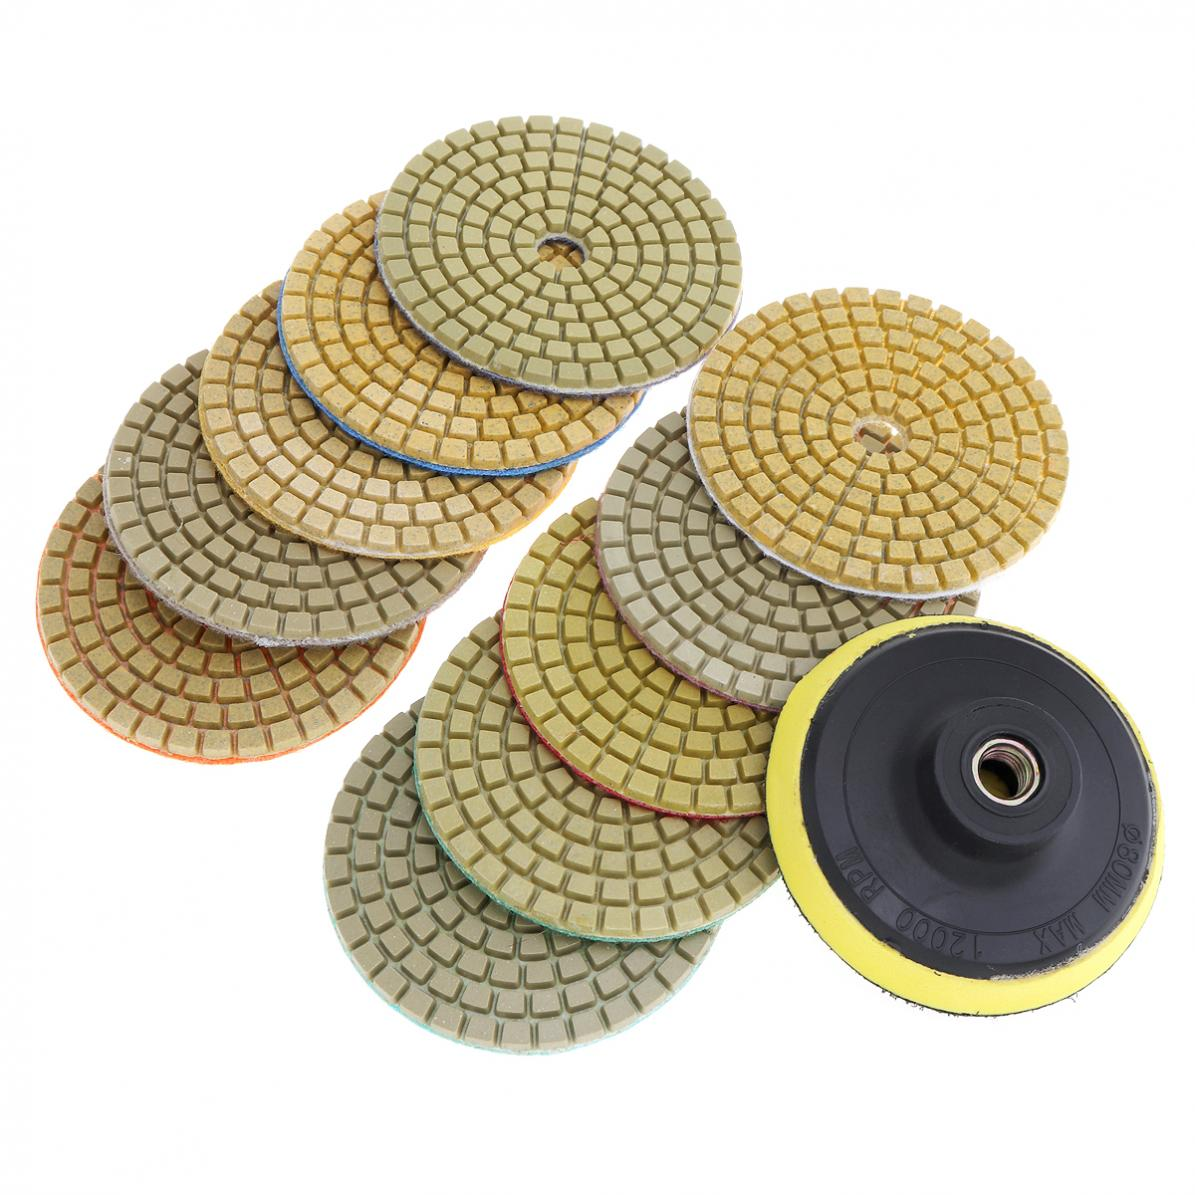 10pcs/set 3 Inch Flexible Wet Stone Polishing Disc Wheel Polishing Tool With Sticky Pad Plate For Diamond Marble Granite